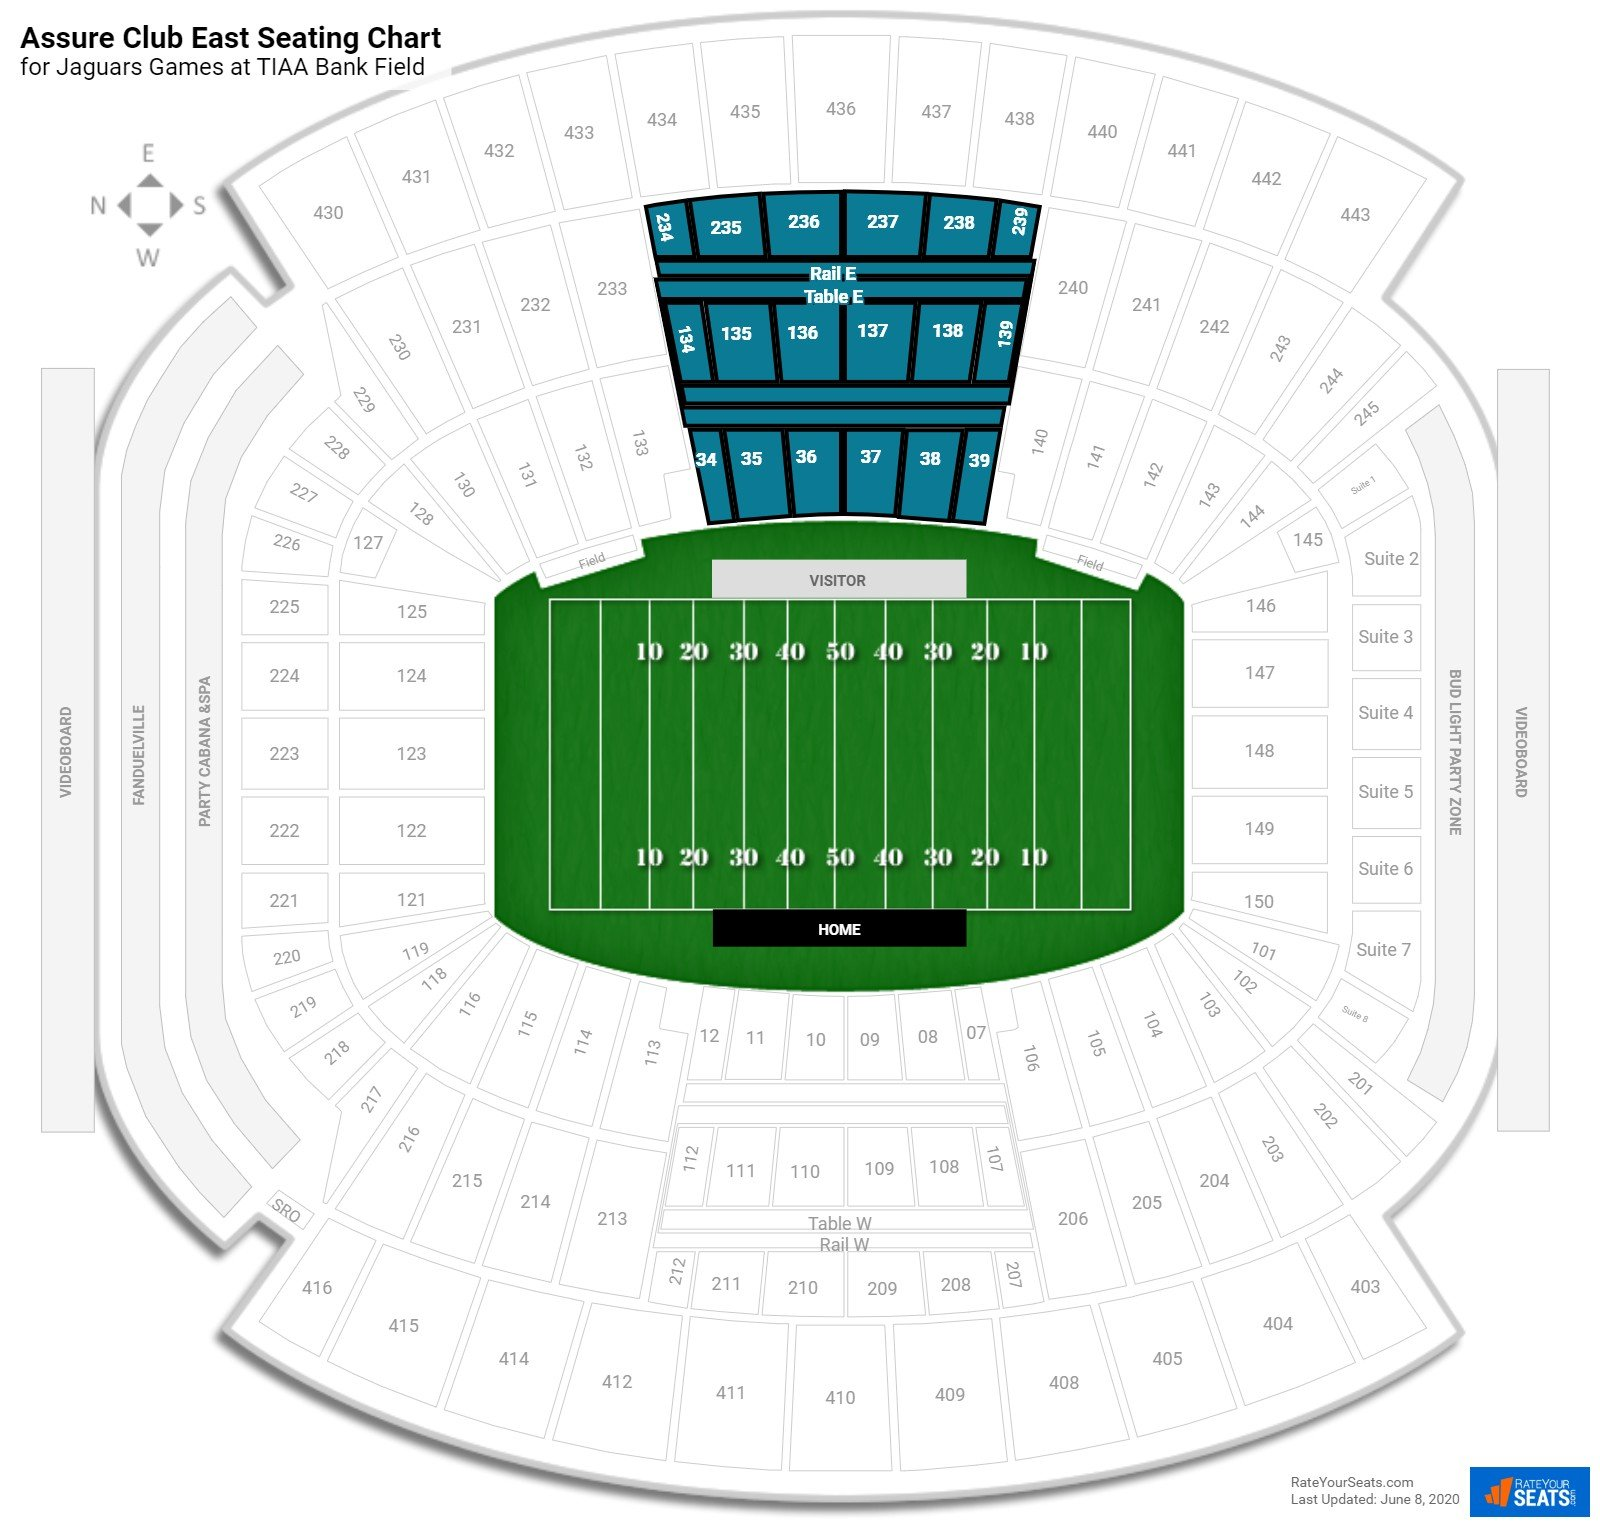 EverBank Field Assure Club East seating chart